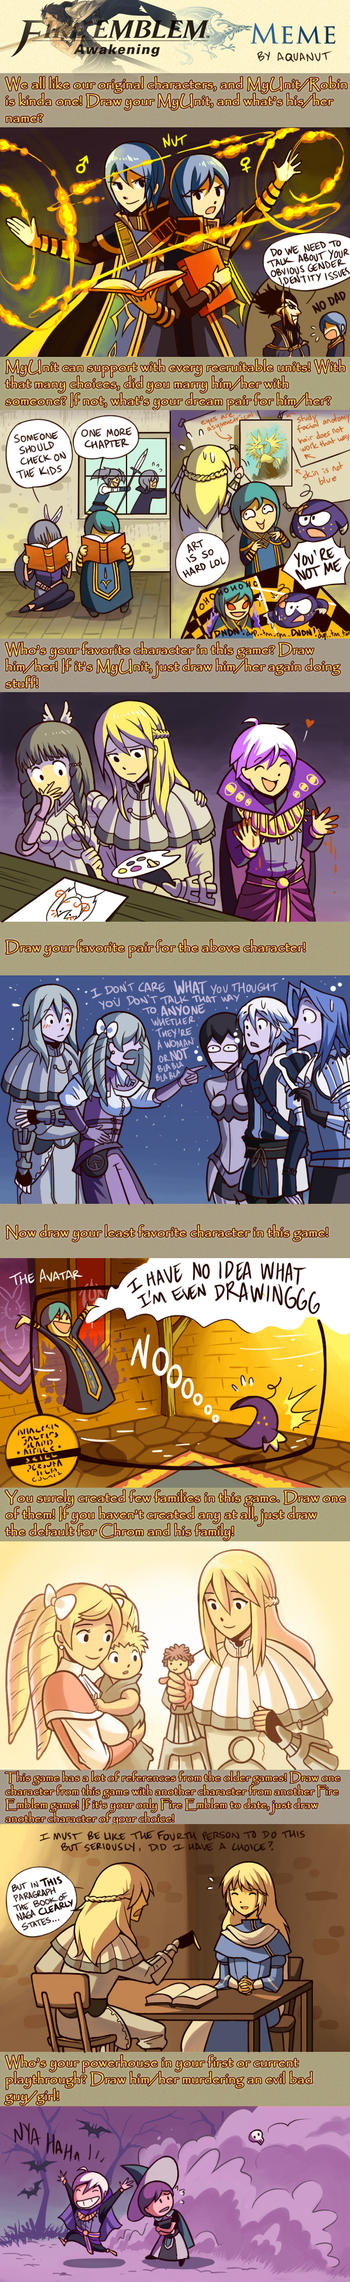 Fire Emblem Awakening Meme by aquanut